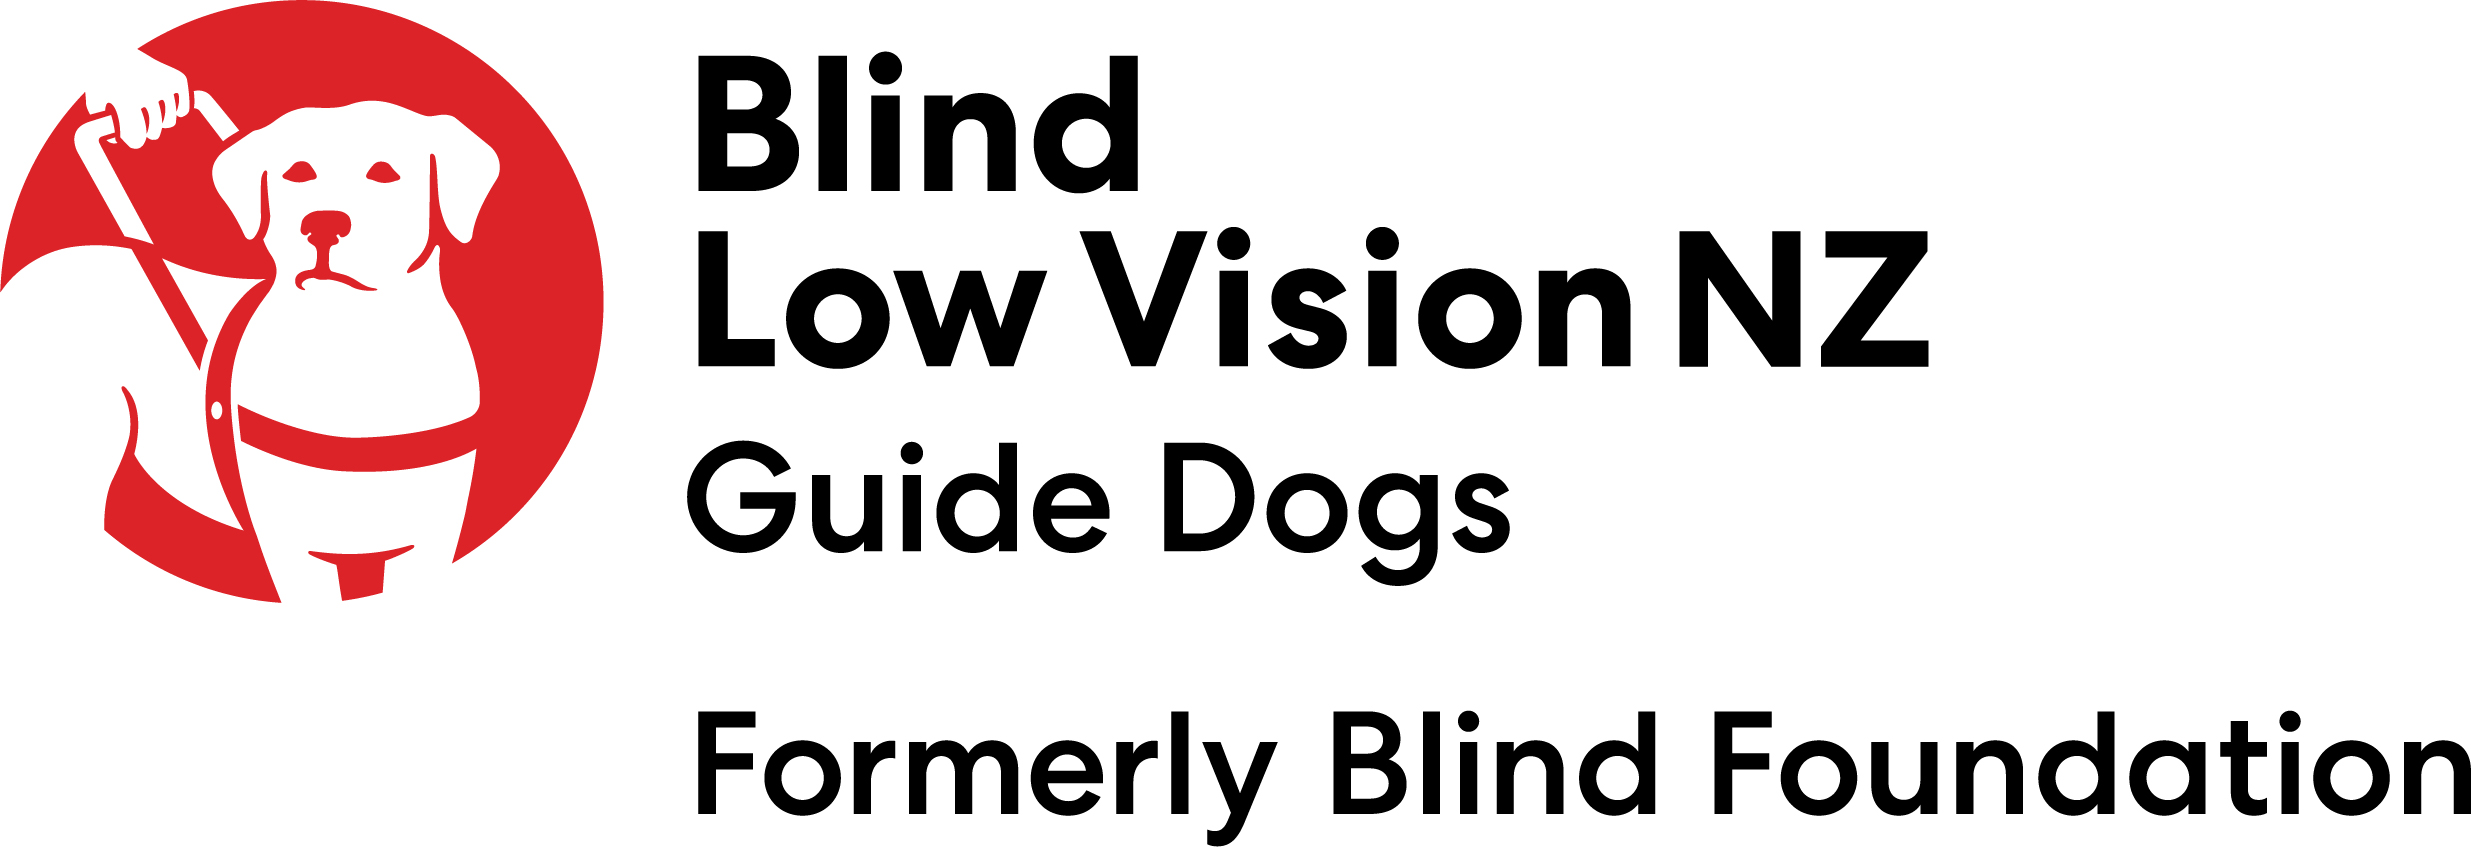 Blind Low Vision NZ Guide Dogs